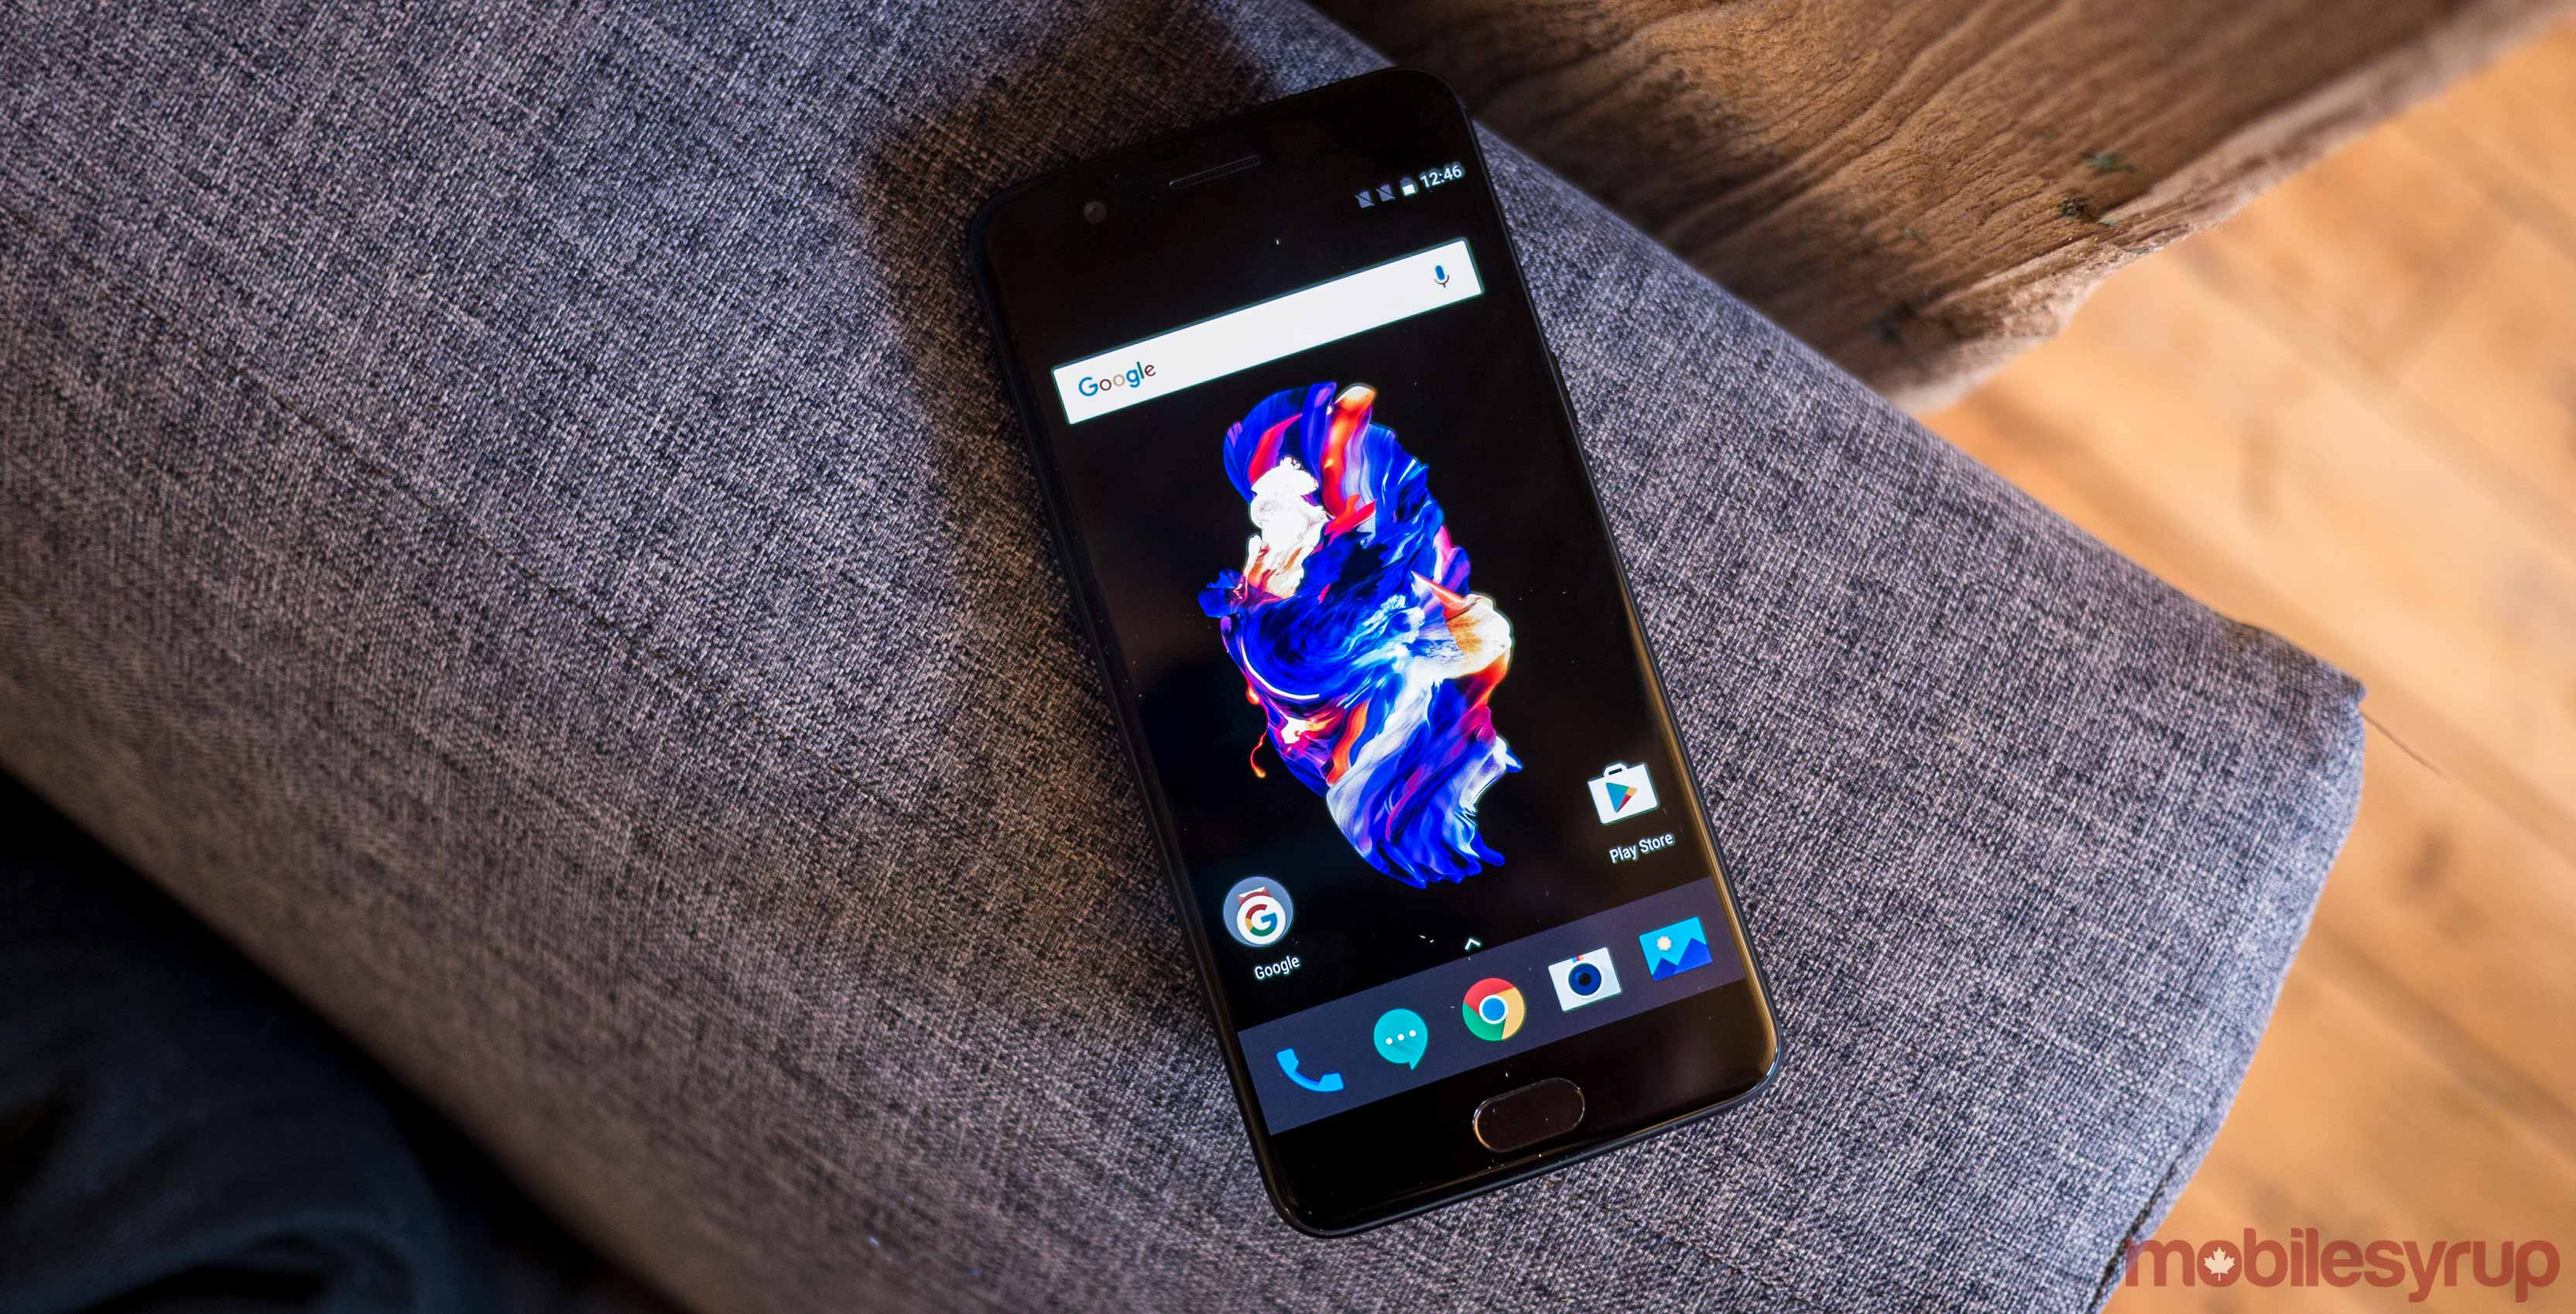 OnePlus 5 on arm of couch